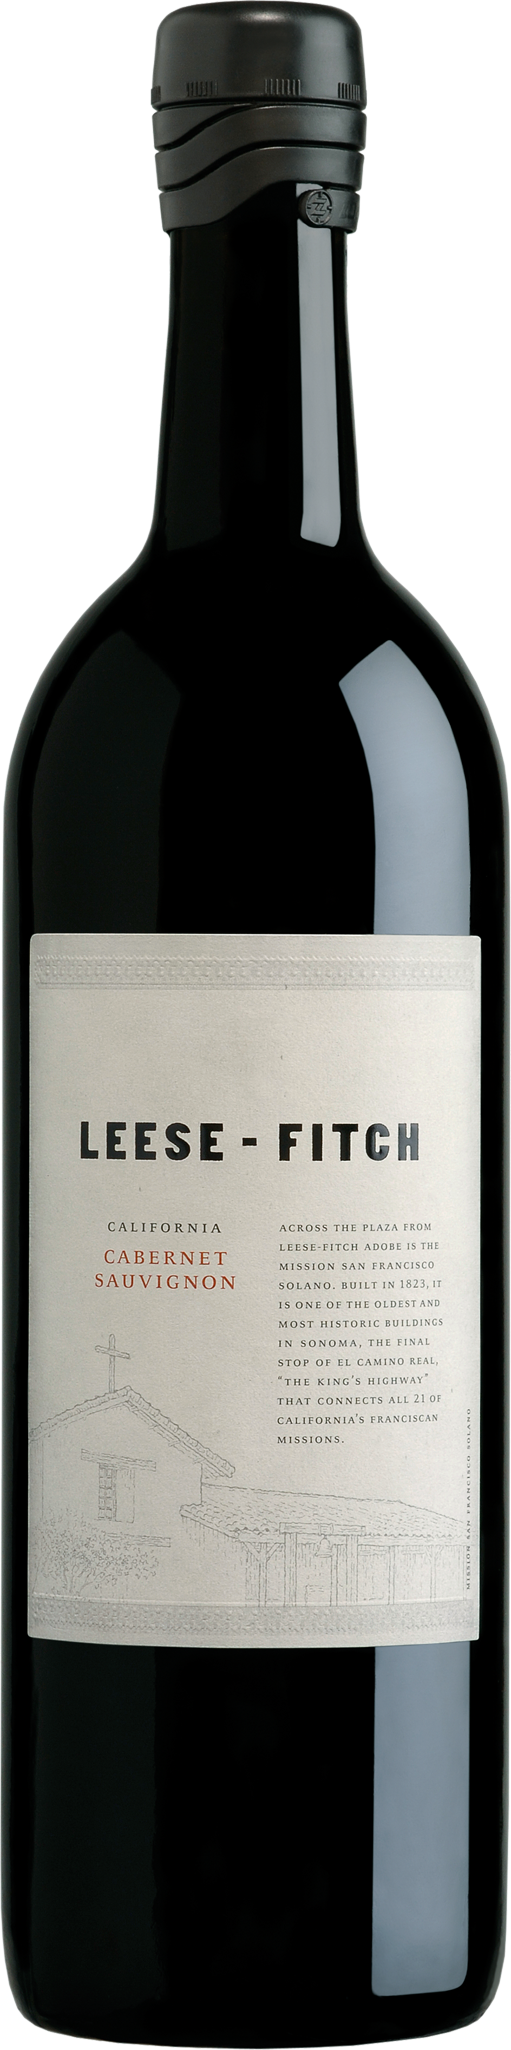 Leese Fitch Bottle PNG Image